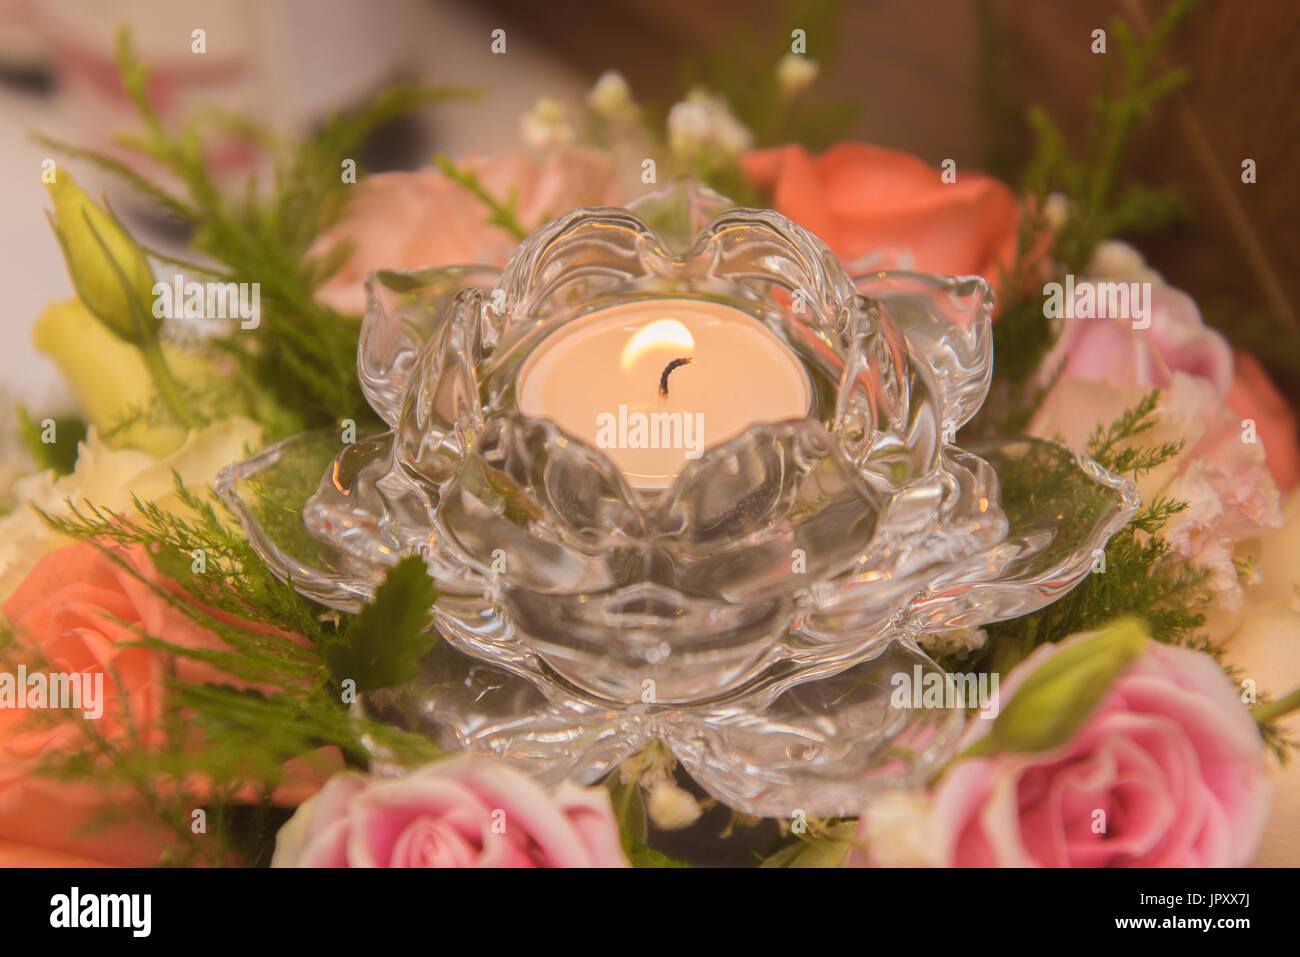 Flowers candles beautiful use for wedding day or happy birthday etc flowers candles beautiful use for wedding day or happy birthday etc izmirmasajfo